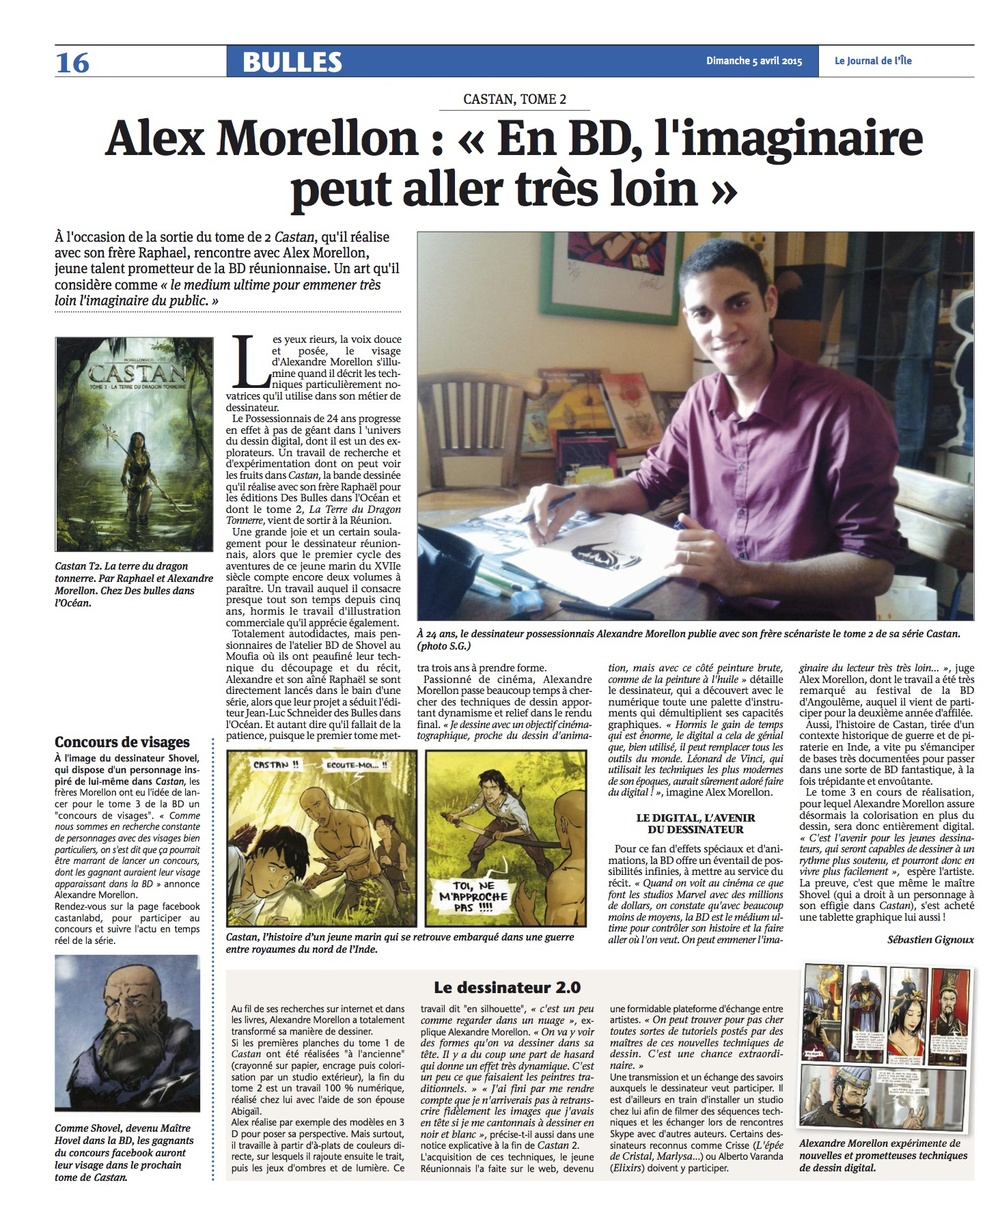 Interview Alex Morellon - Castan 2 par le JIR